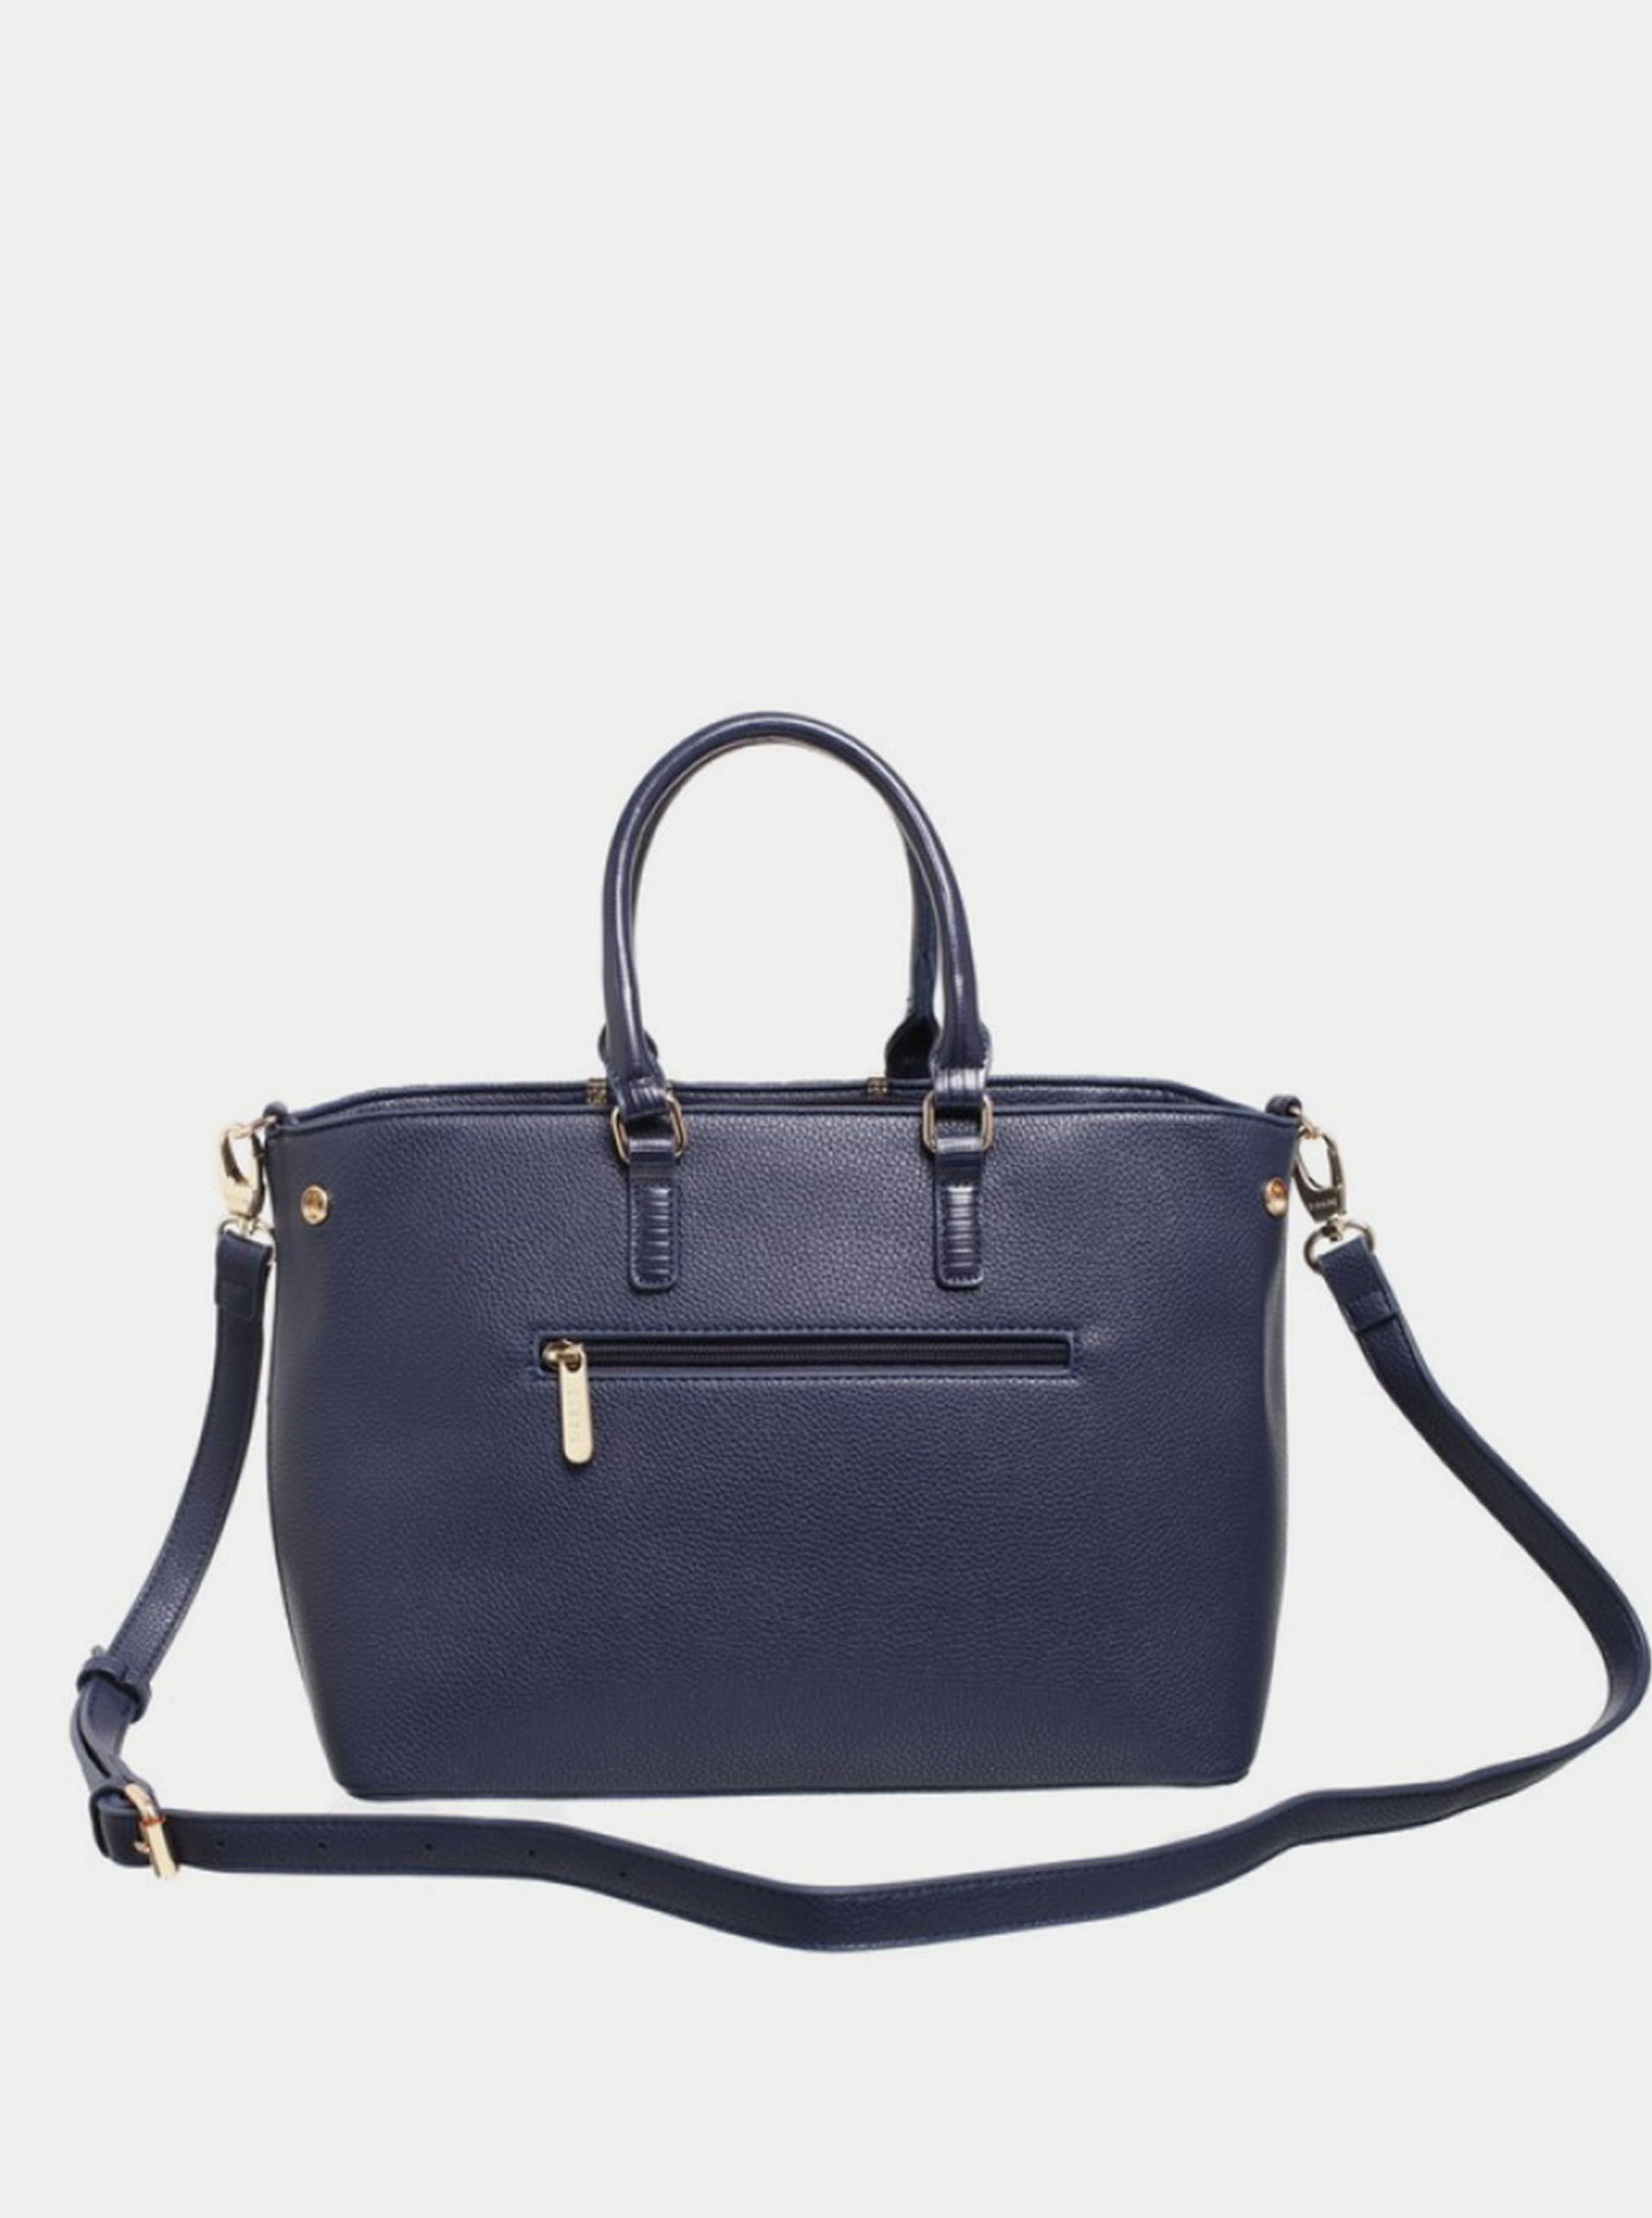 Borsa a mano Bessie London blu scuro